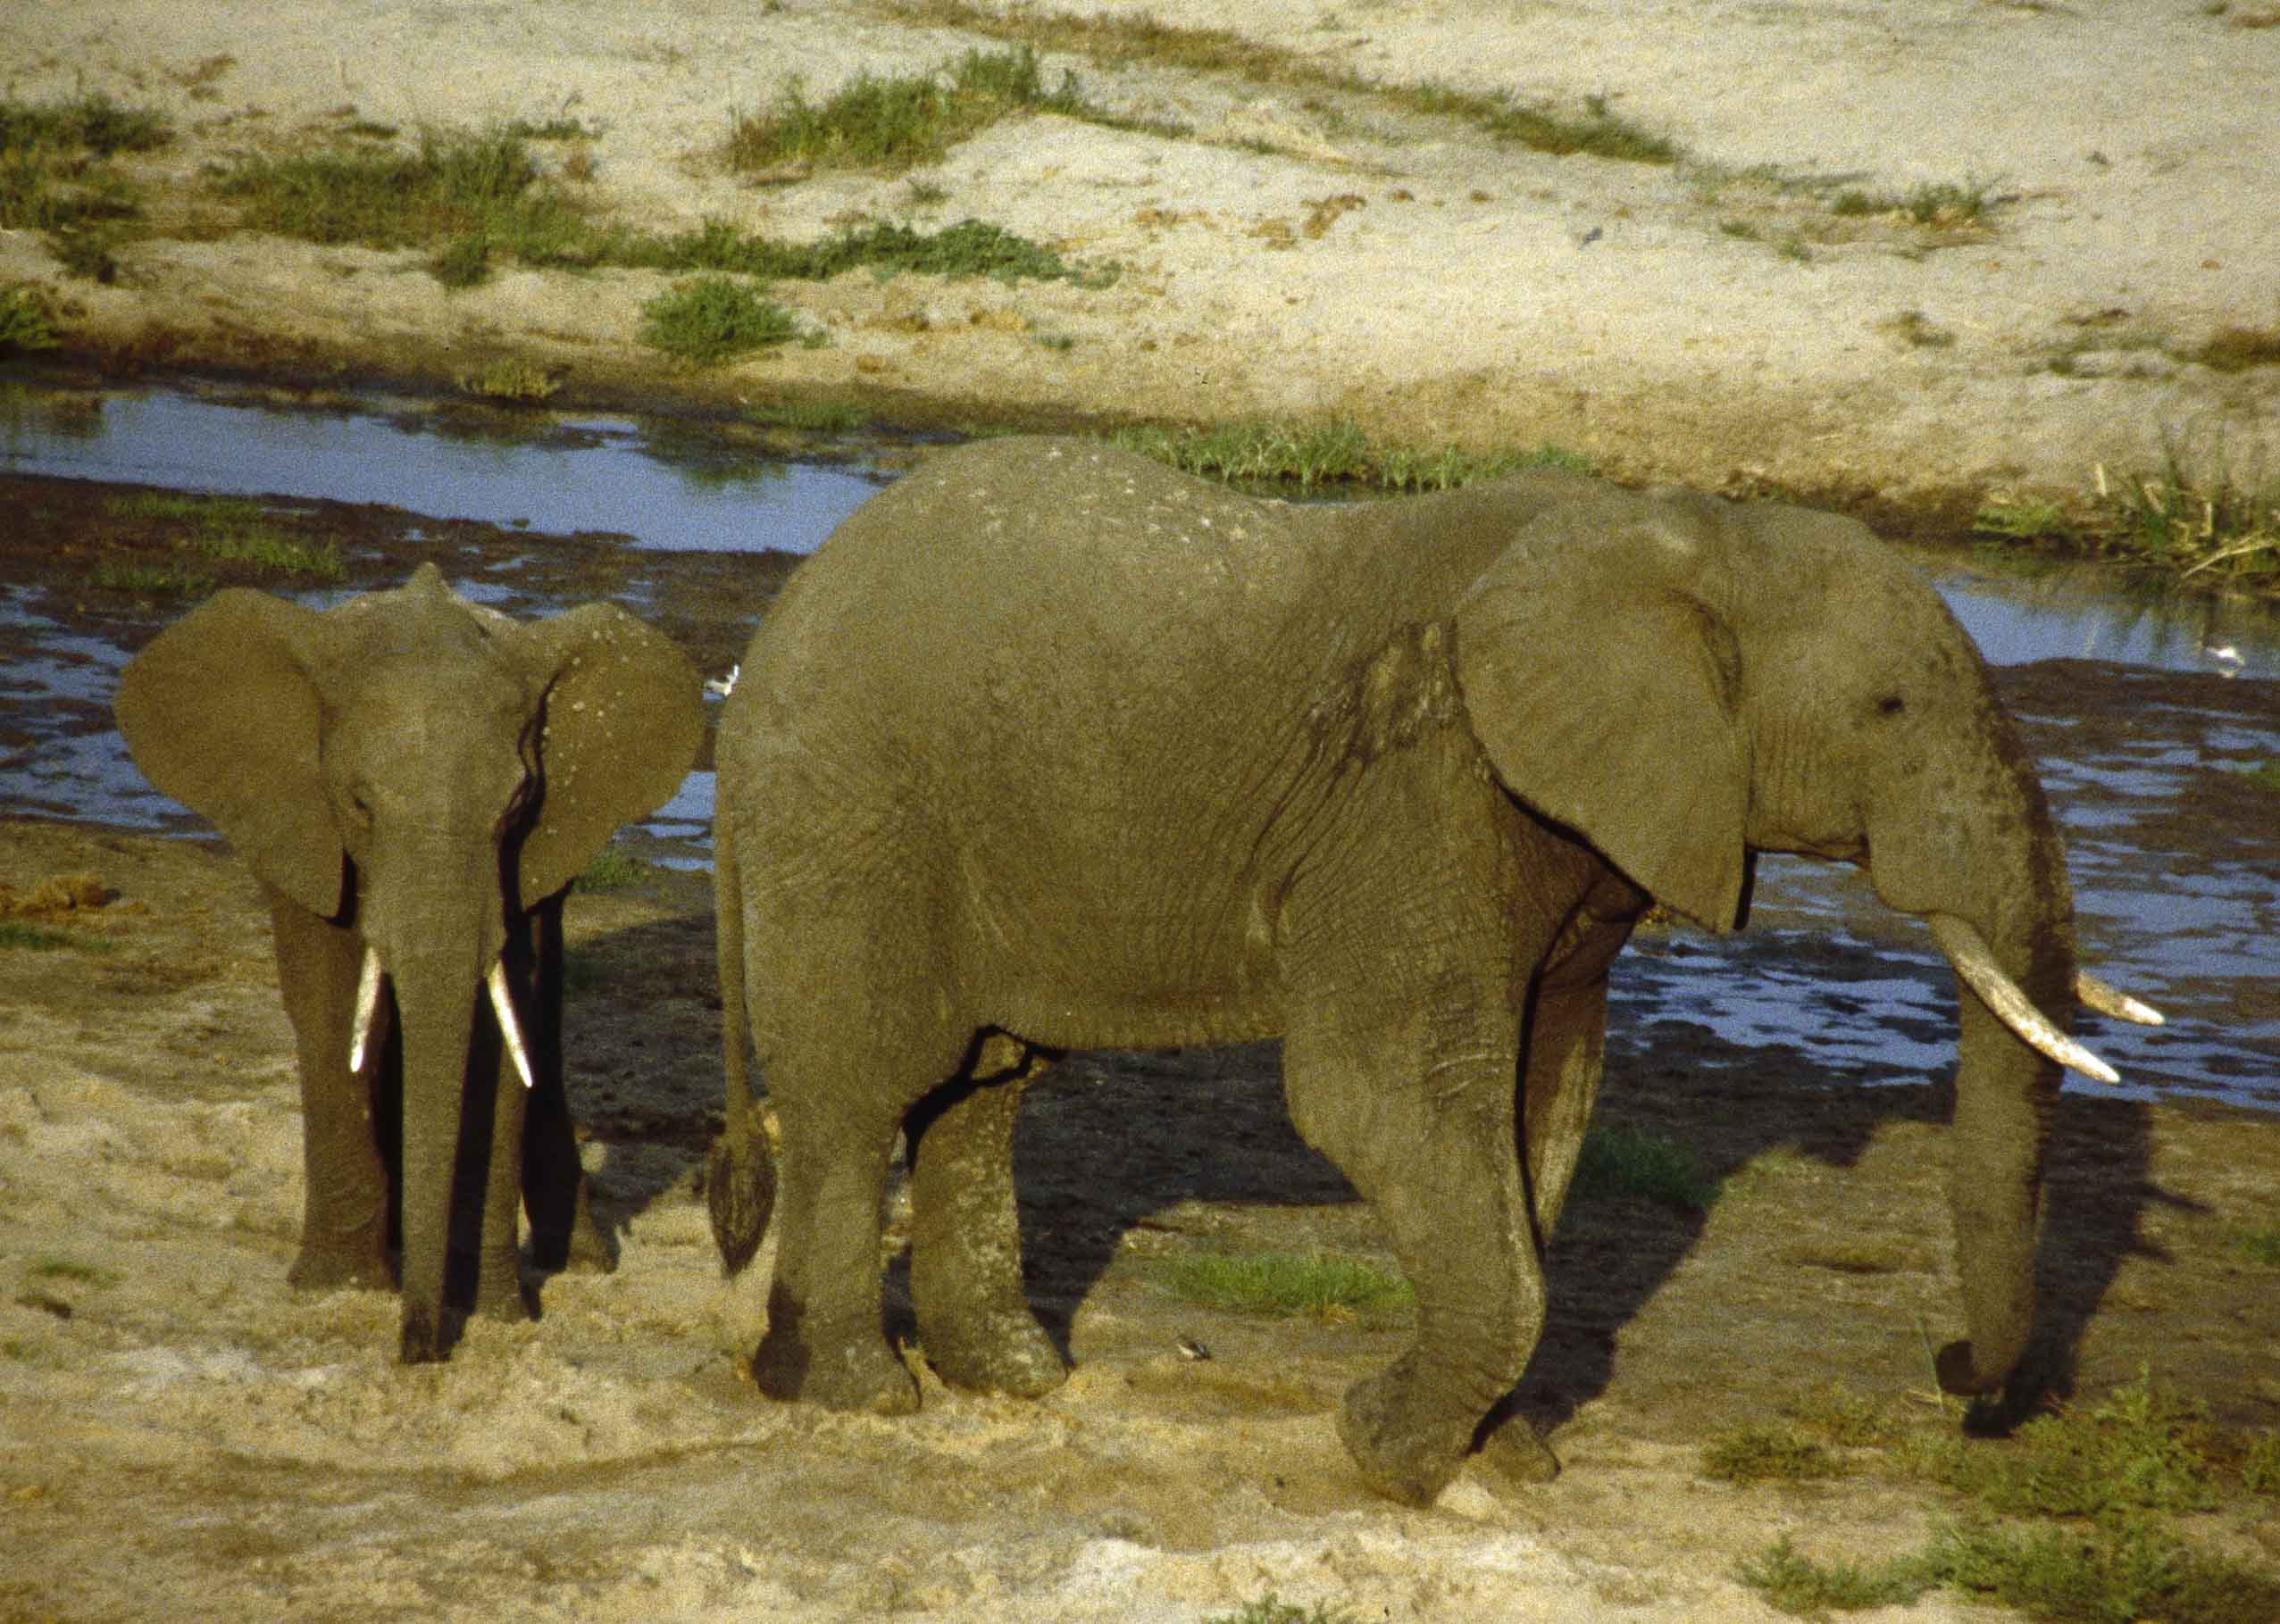 Two elephants by a small river